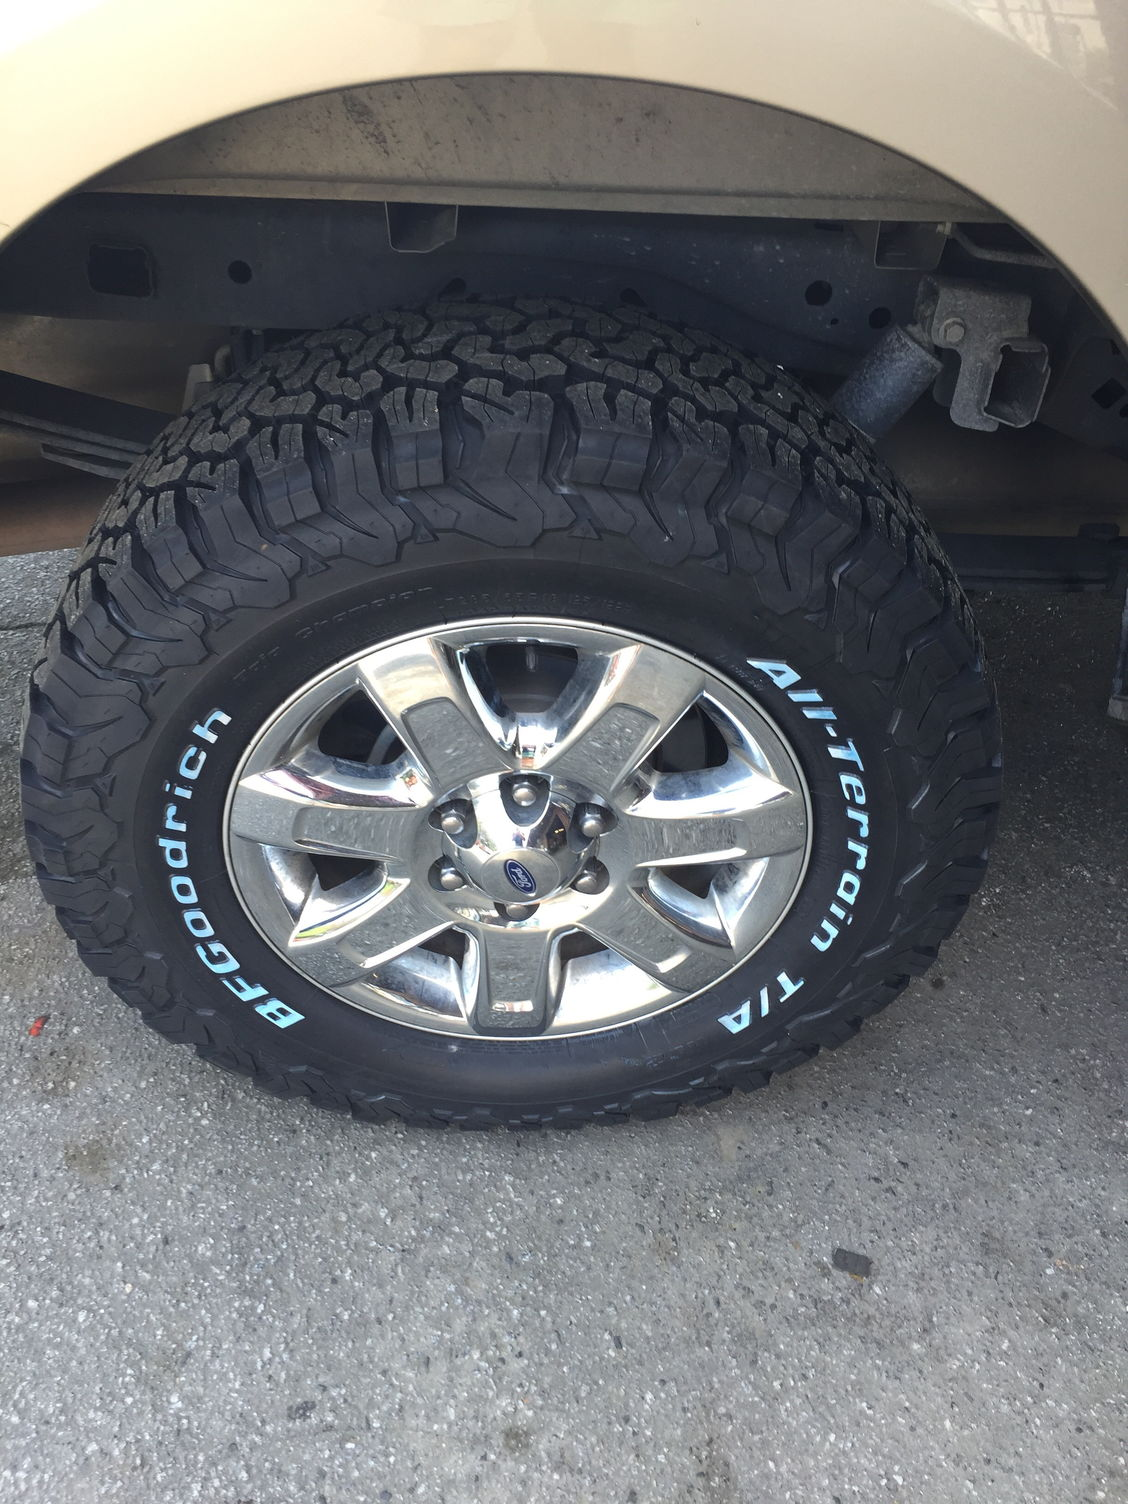 Ford F150 Ecoboost Mpg >> New tires! BFG KO2 285 65 18 - Ford F150 Forum - Community of Ford Truck Fans